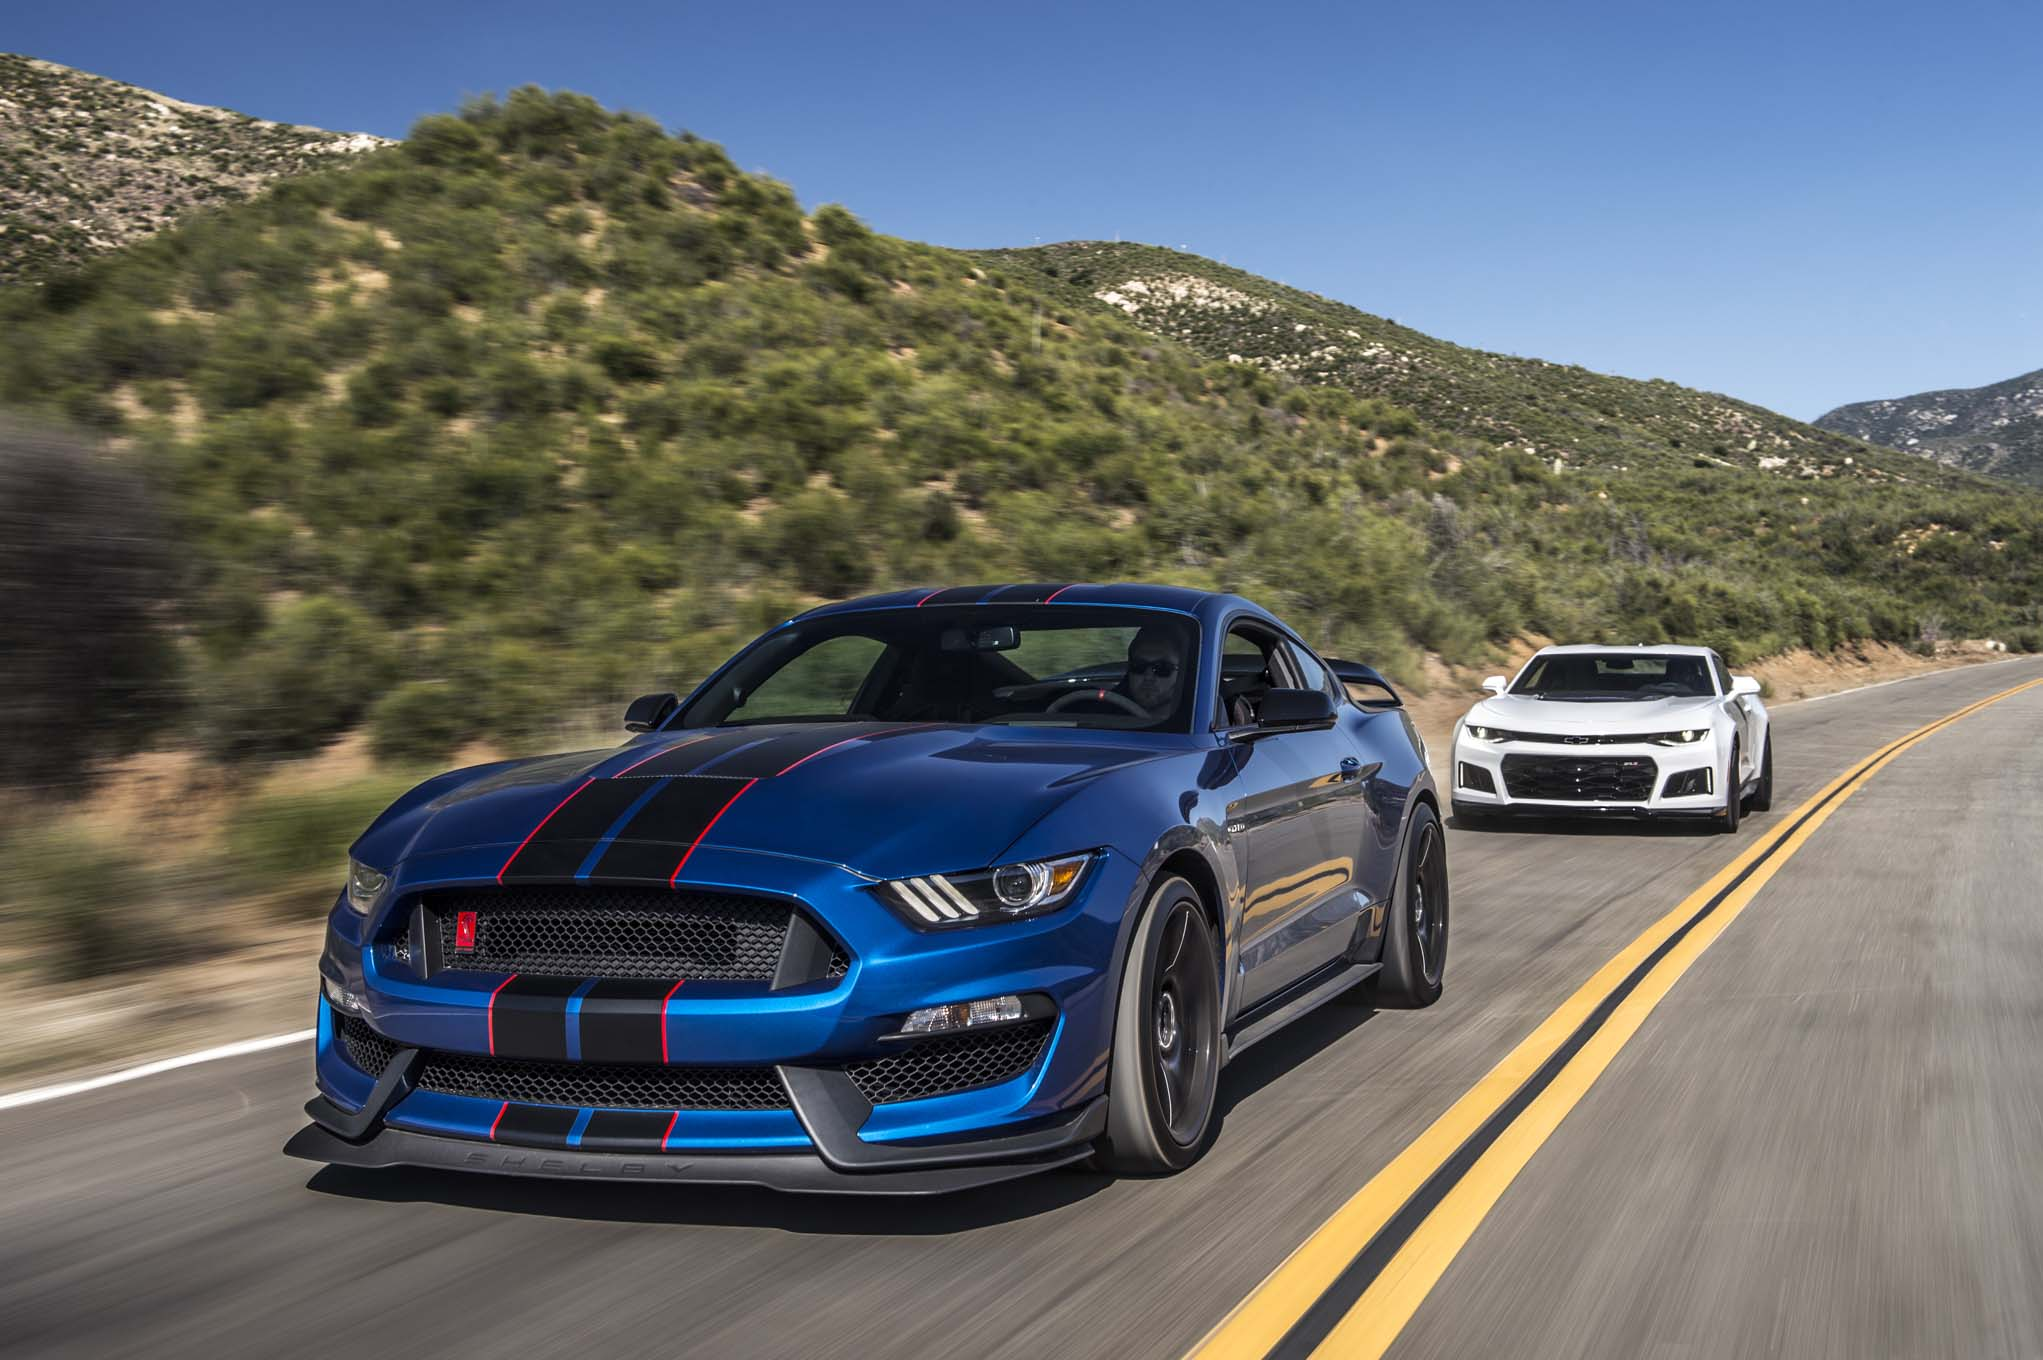 Chevrolet Camaro Zl1 2017 Vs Ford Mustang Shelby Gt350r